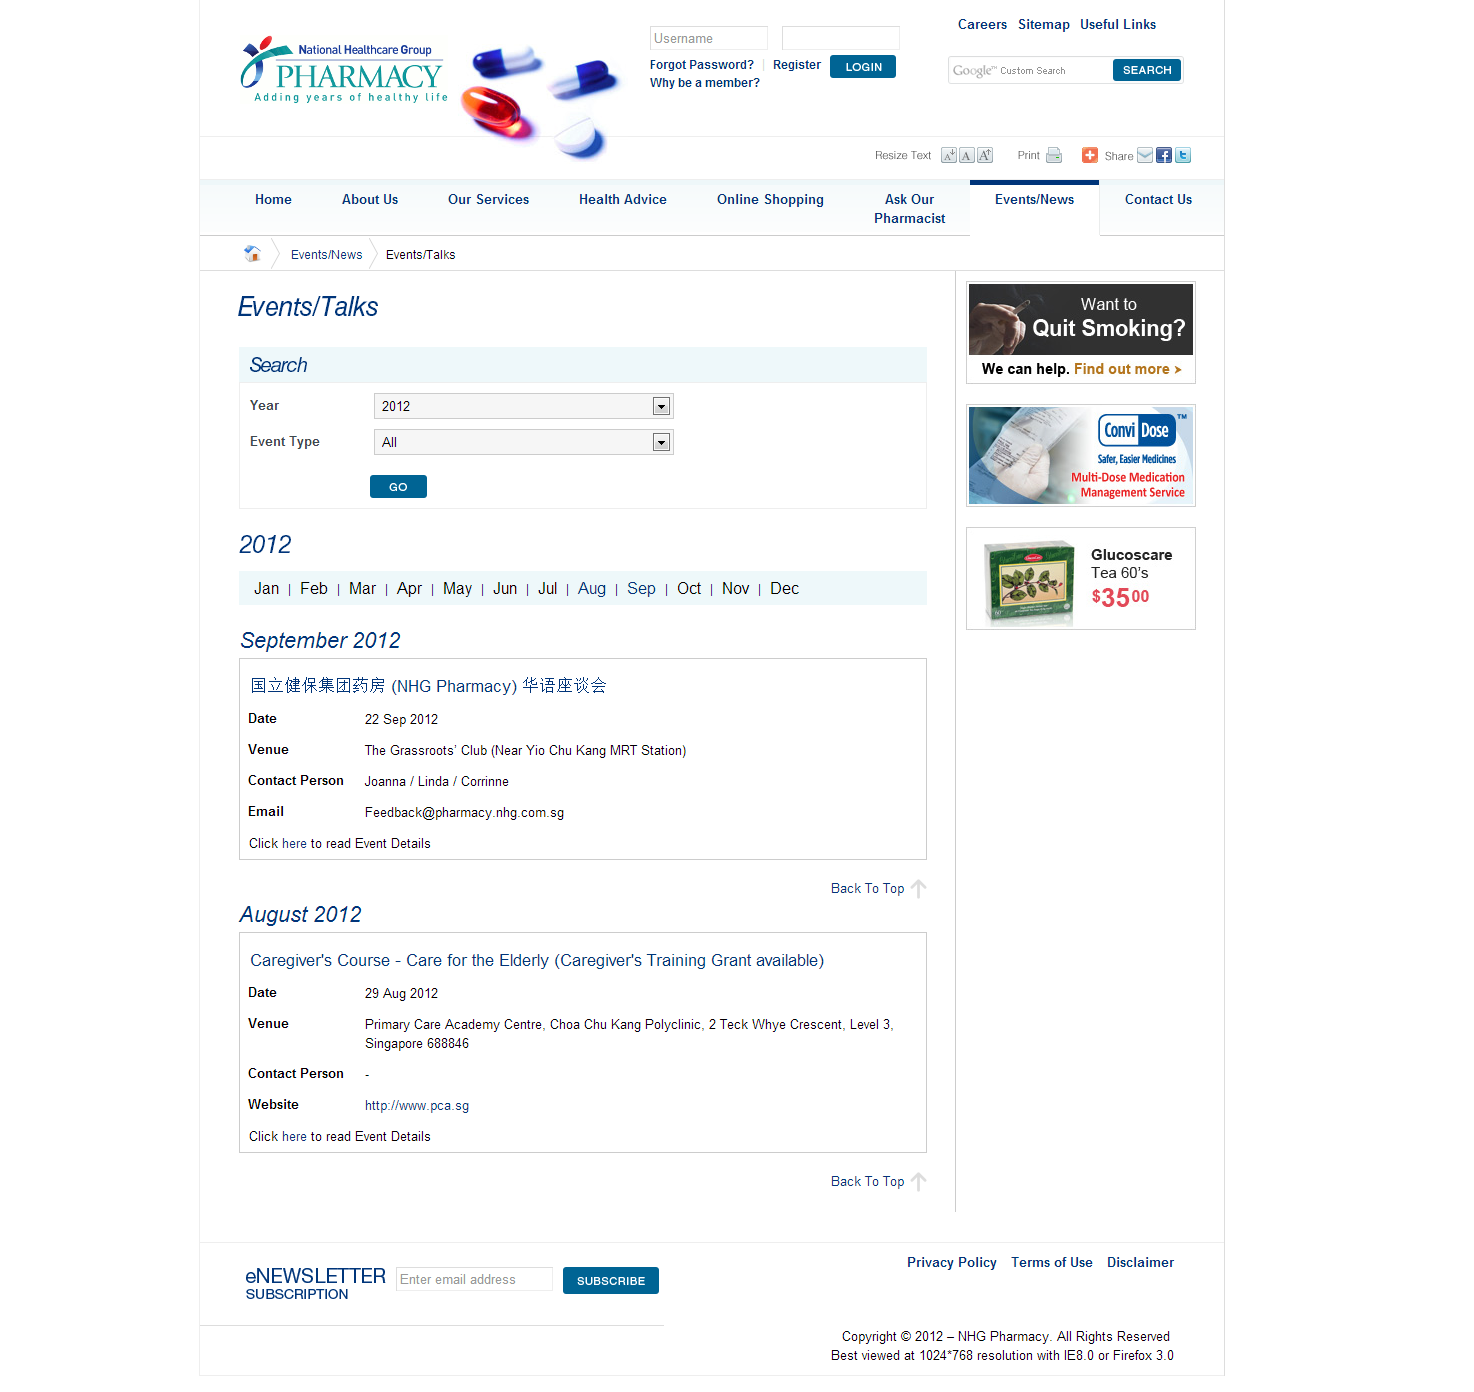 NHG Pharmacy Corporate and Ecommerce Portal Image 2